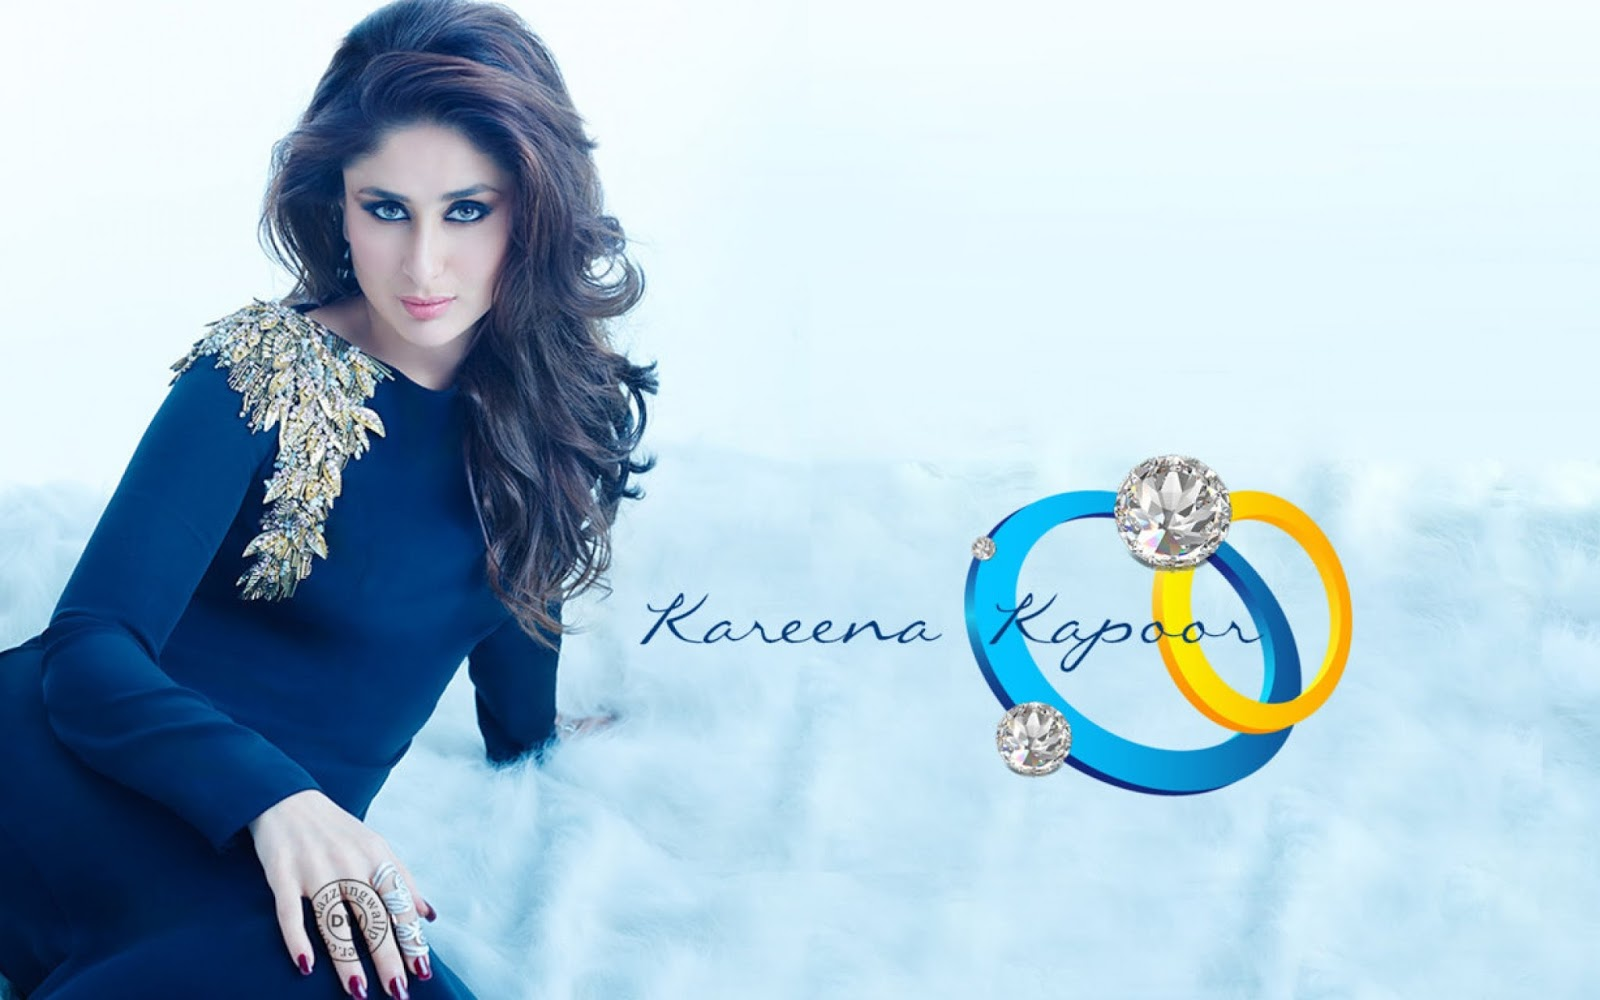 kareena kapoor ring wallpaper